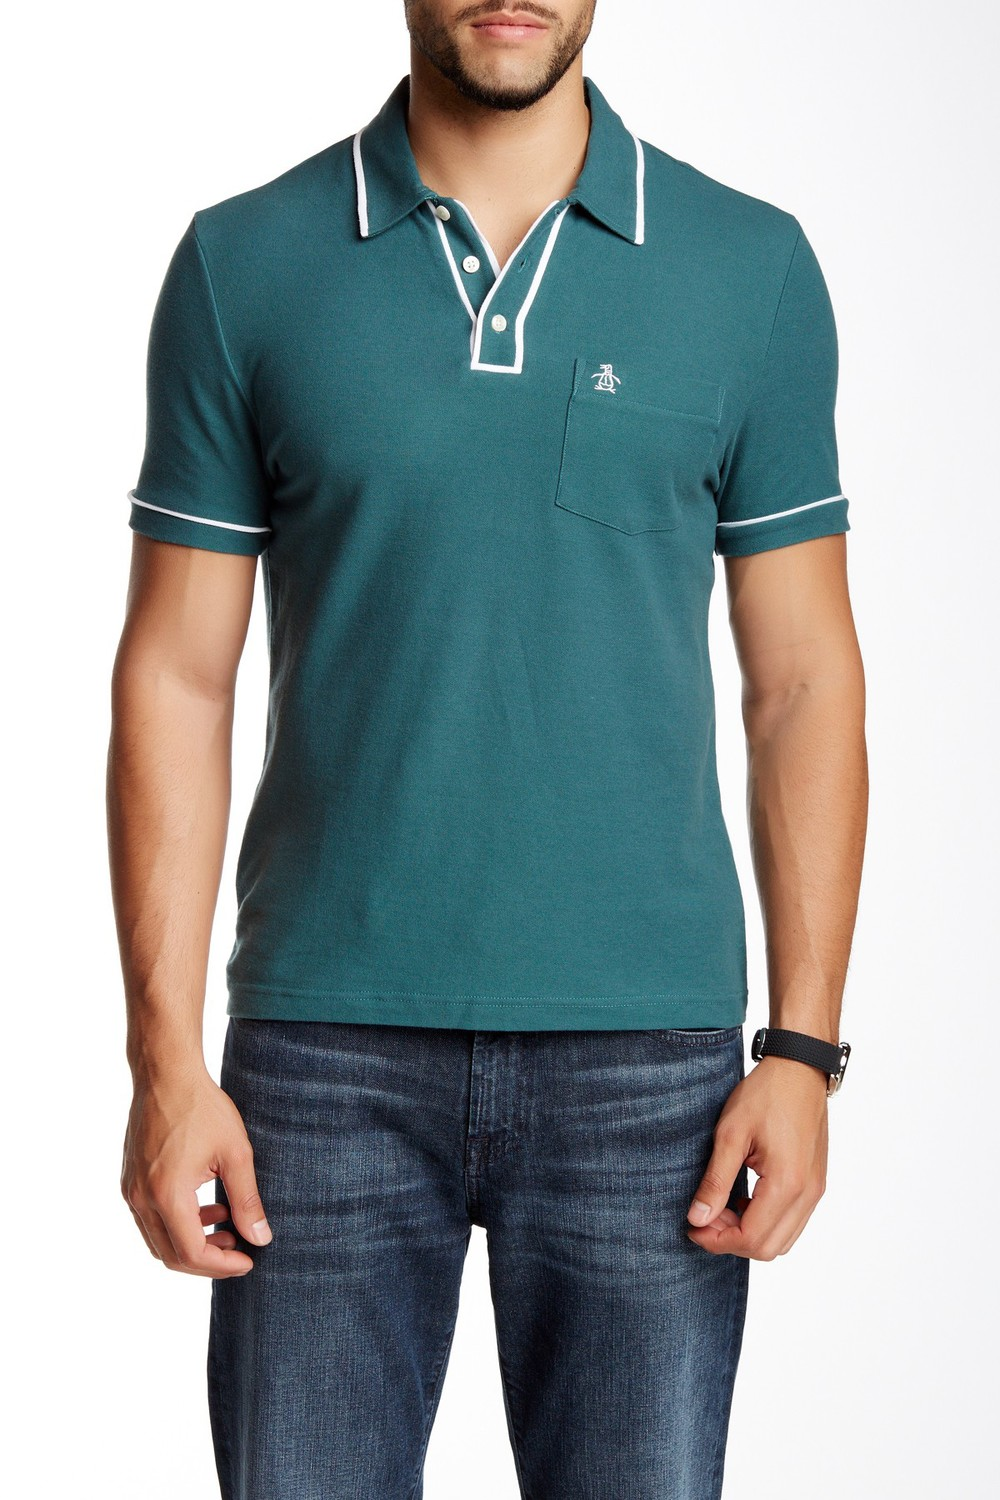 Original Penguin Earl Updated Heritage Slim Fit Polo. Available in multiple colors. Nordstrom Rack. Was: $59 Now: $29.